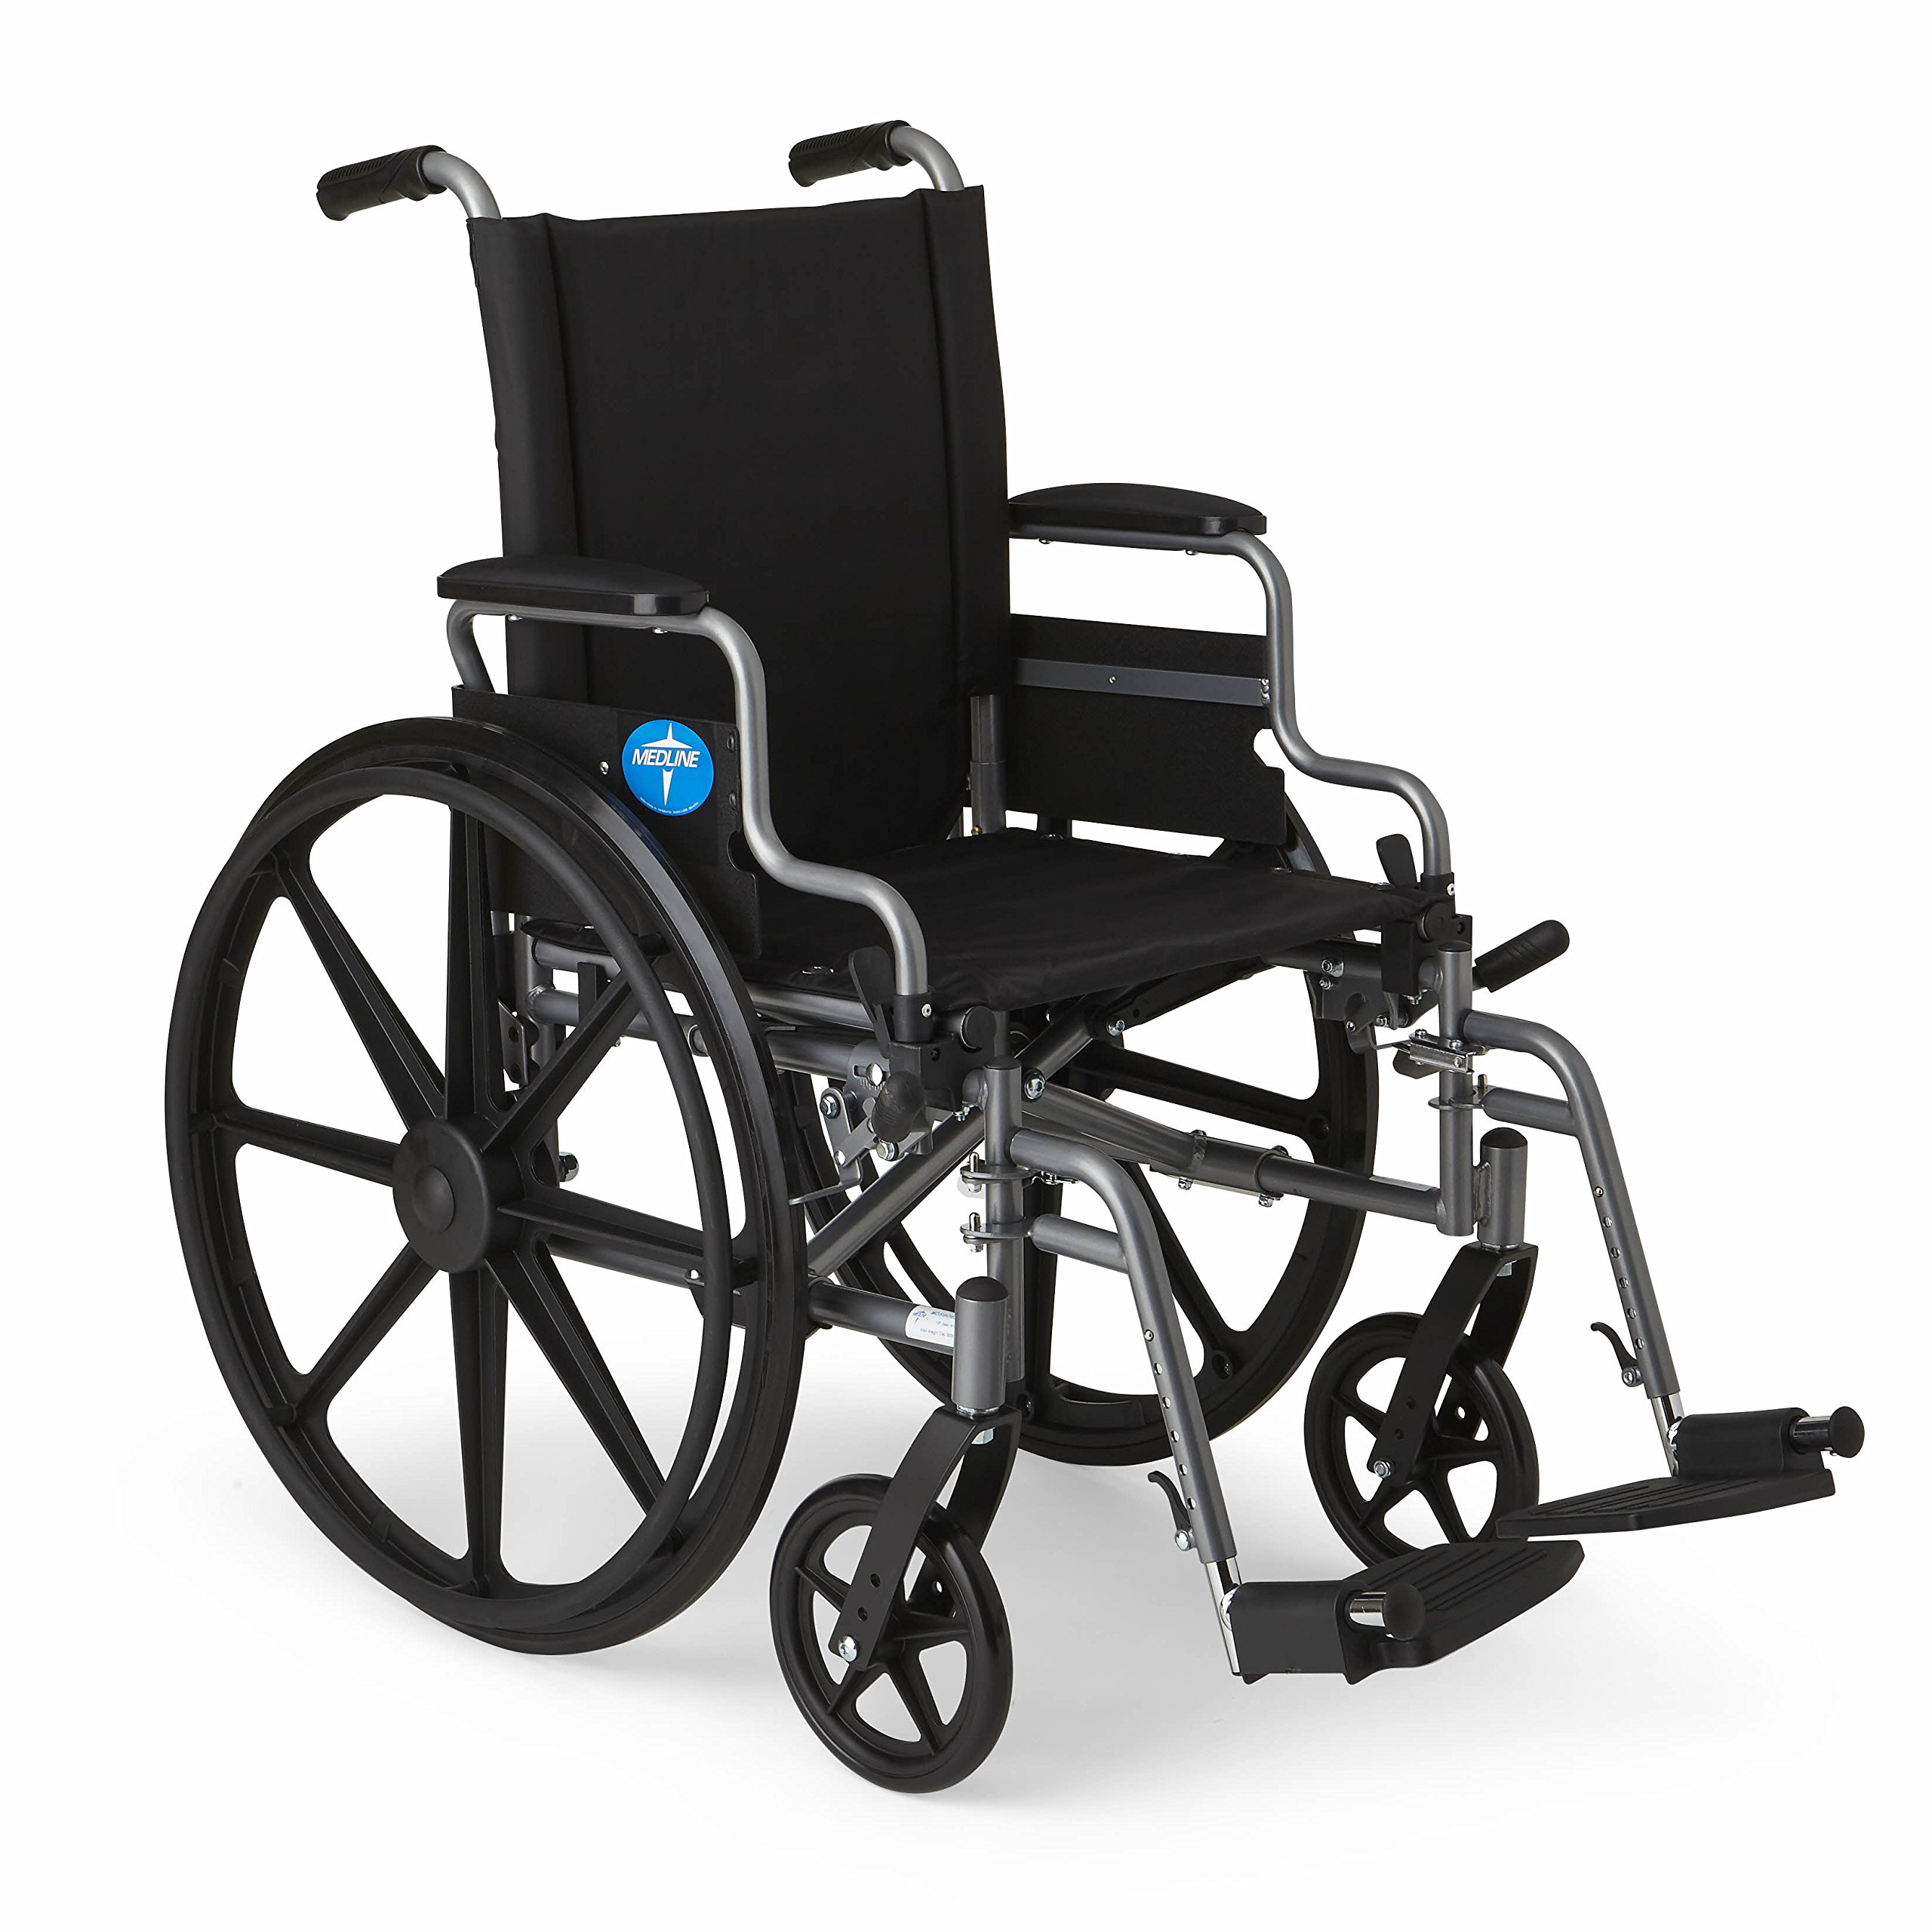 Medline Lightweight and User-Friendly Wheelchair with Flip-Back Desk Arms and Swing-Away Leg Rests for Easy Transfers, Gray, 20'' x 18'' Seat by Medline